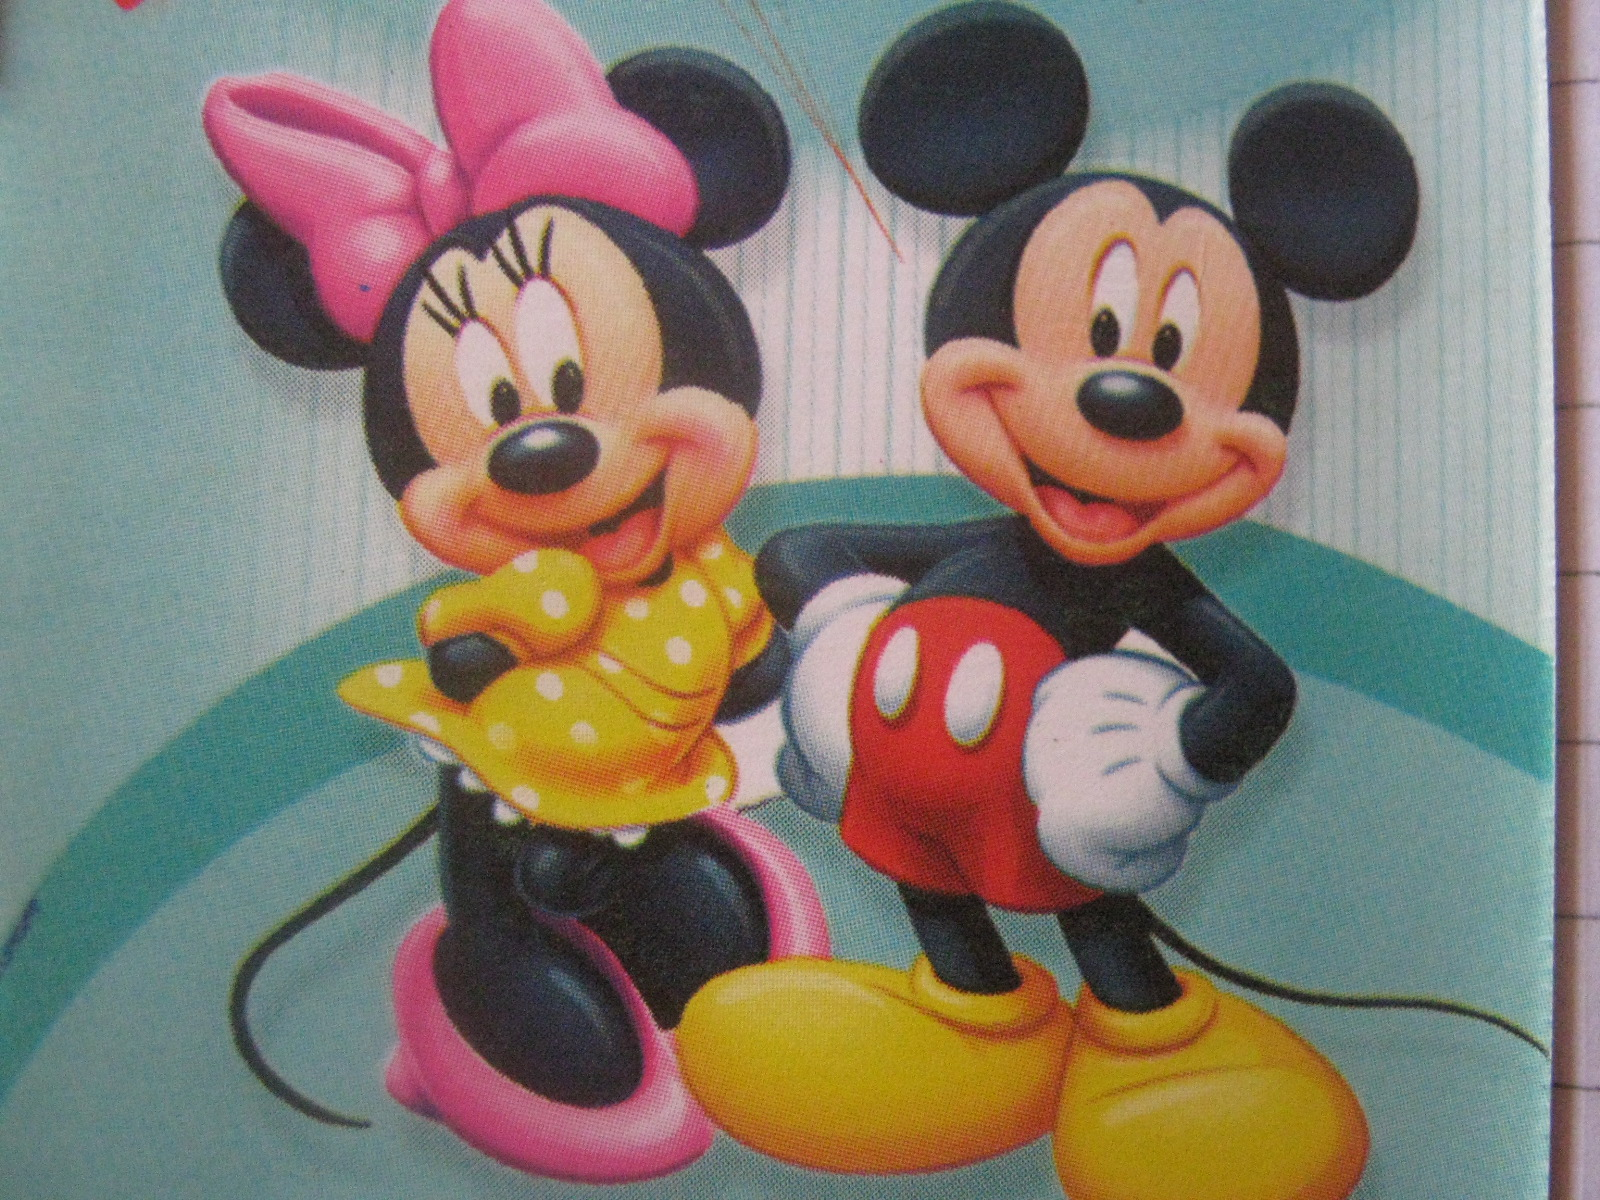 Mickey minnie mickey et minnie photo 24139925 fanpop - Minni et mickey ...